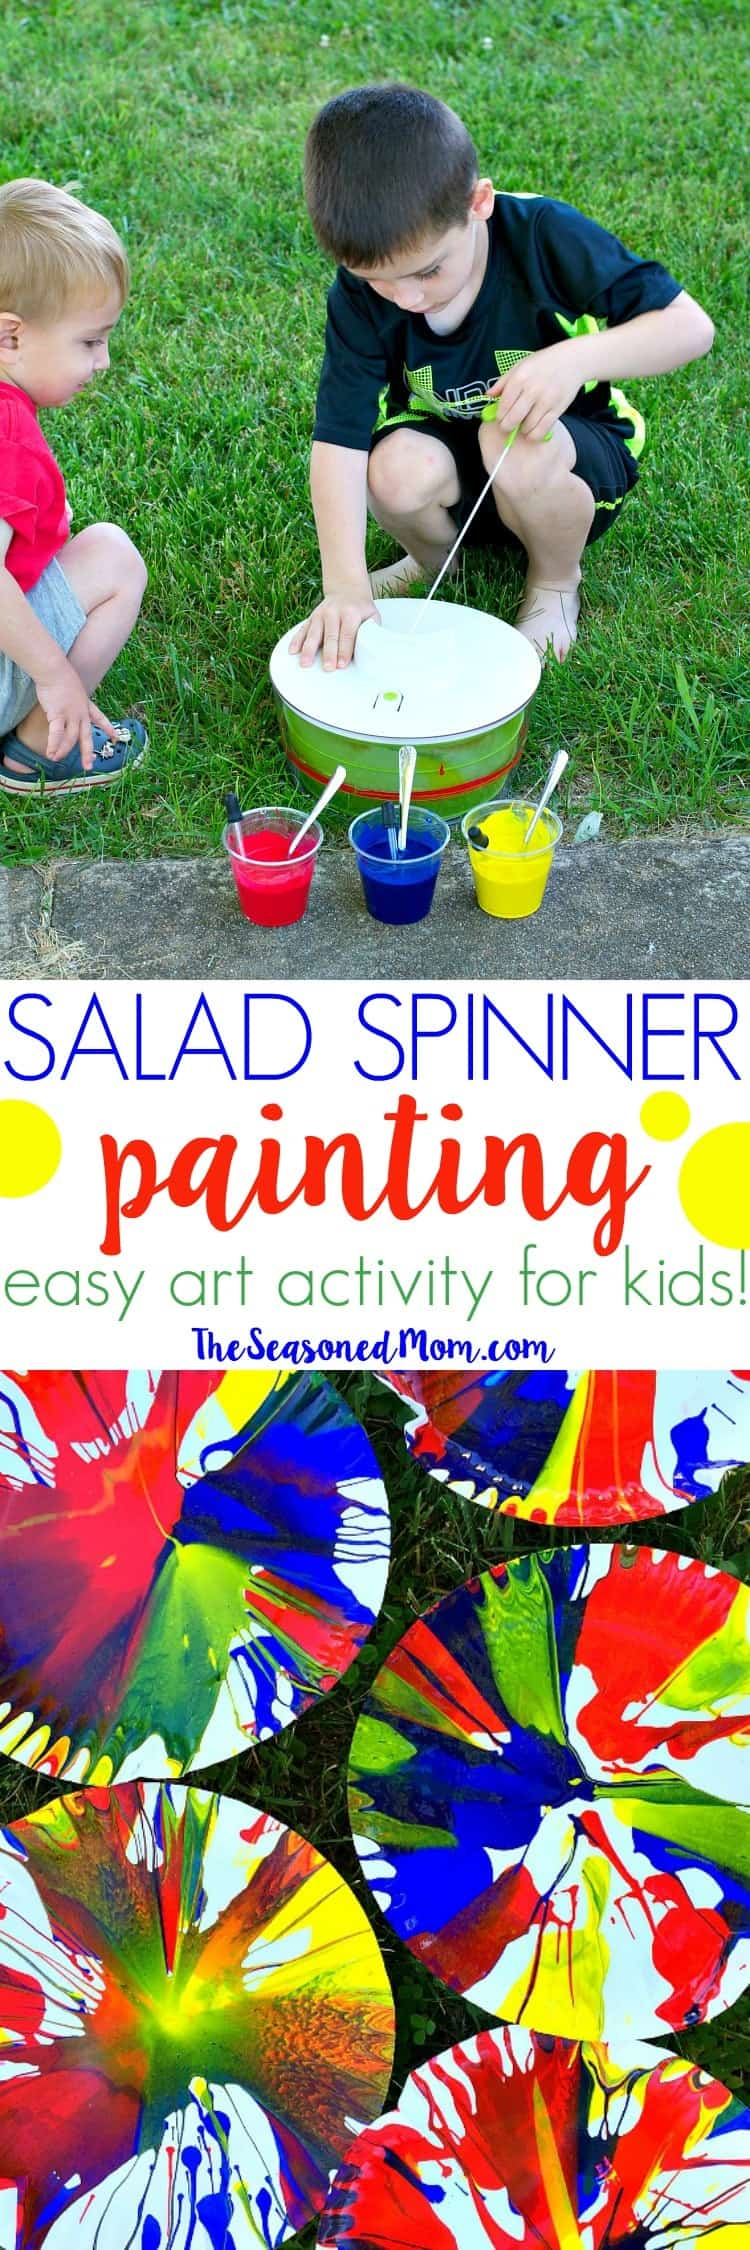 Easy Art Activity for Kids: Salad Spinner Painting - The Seasoned Mom